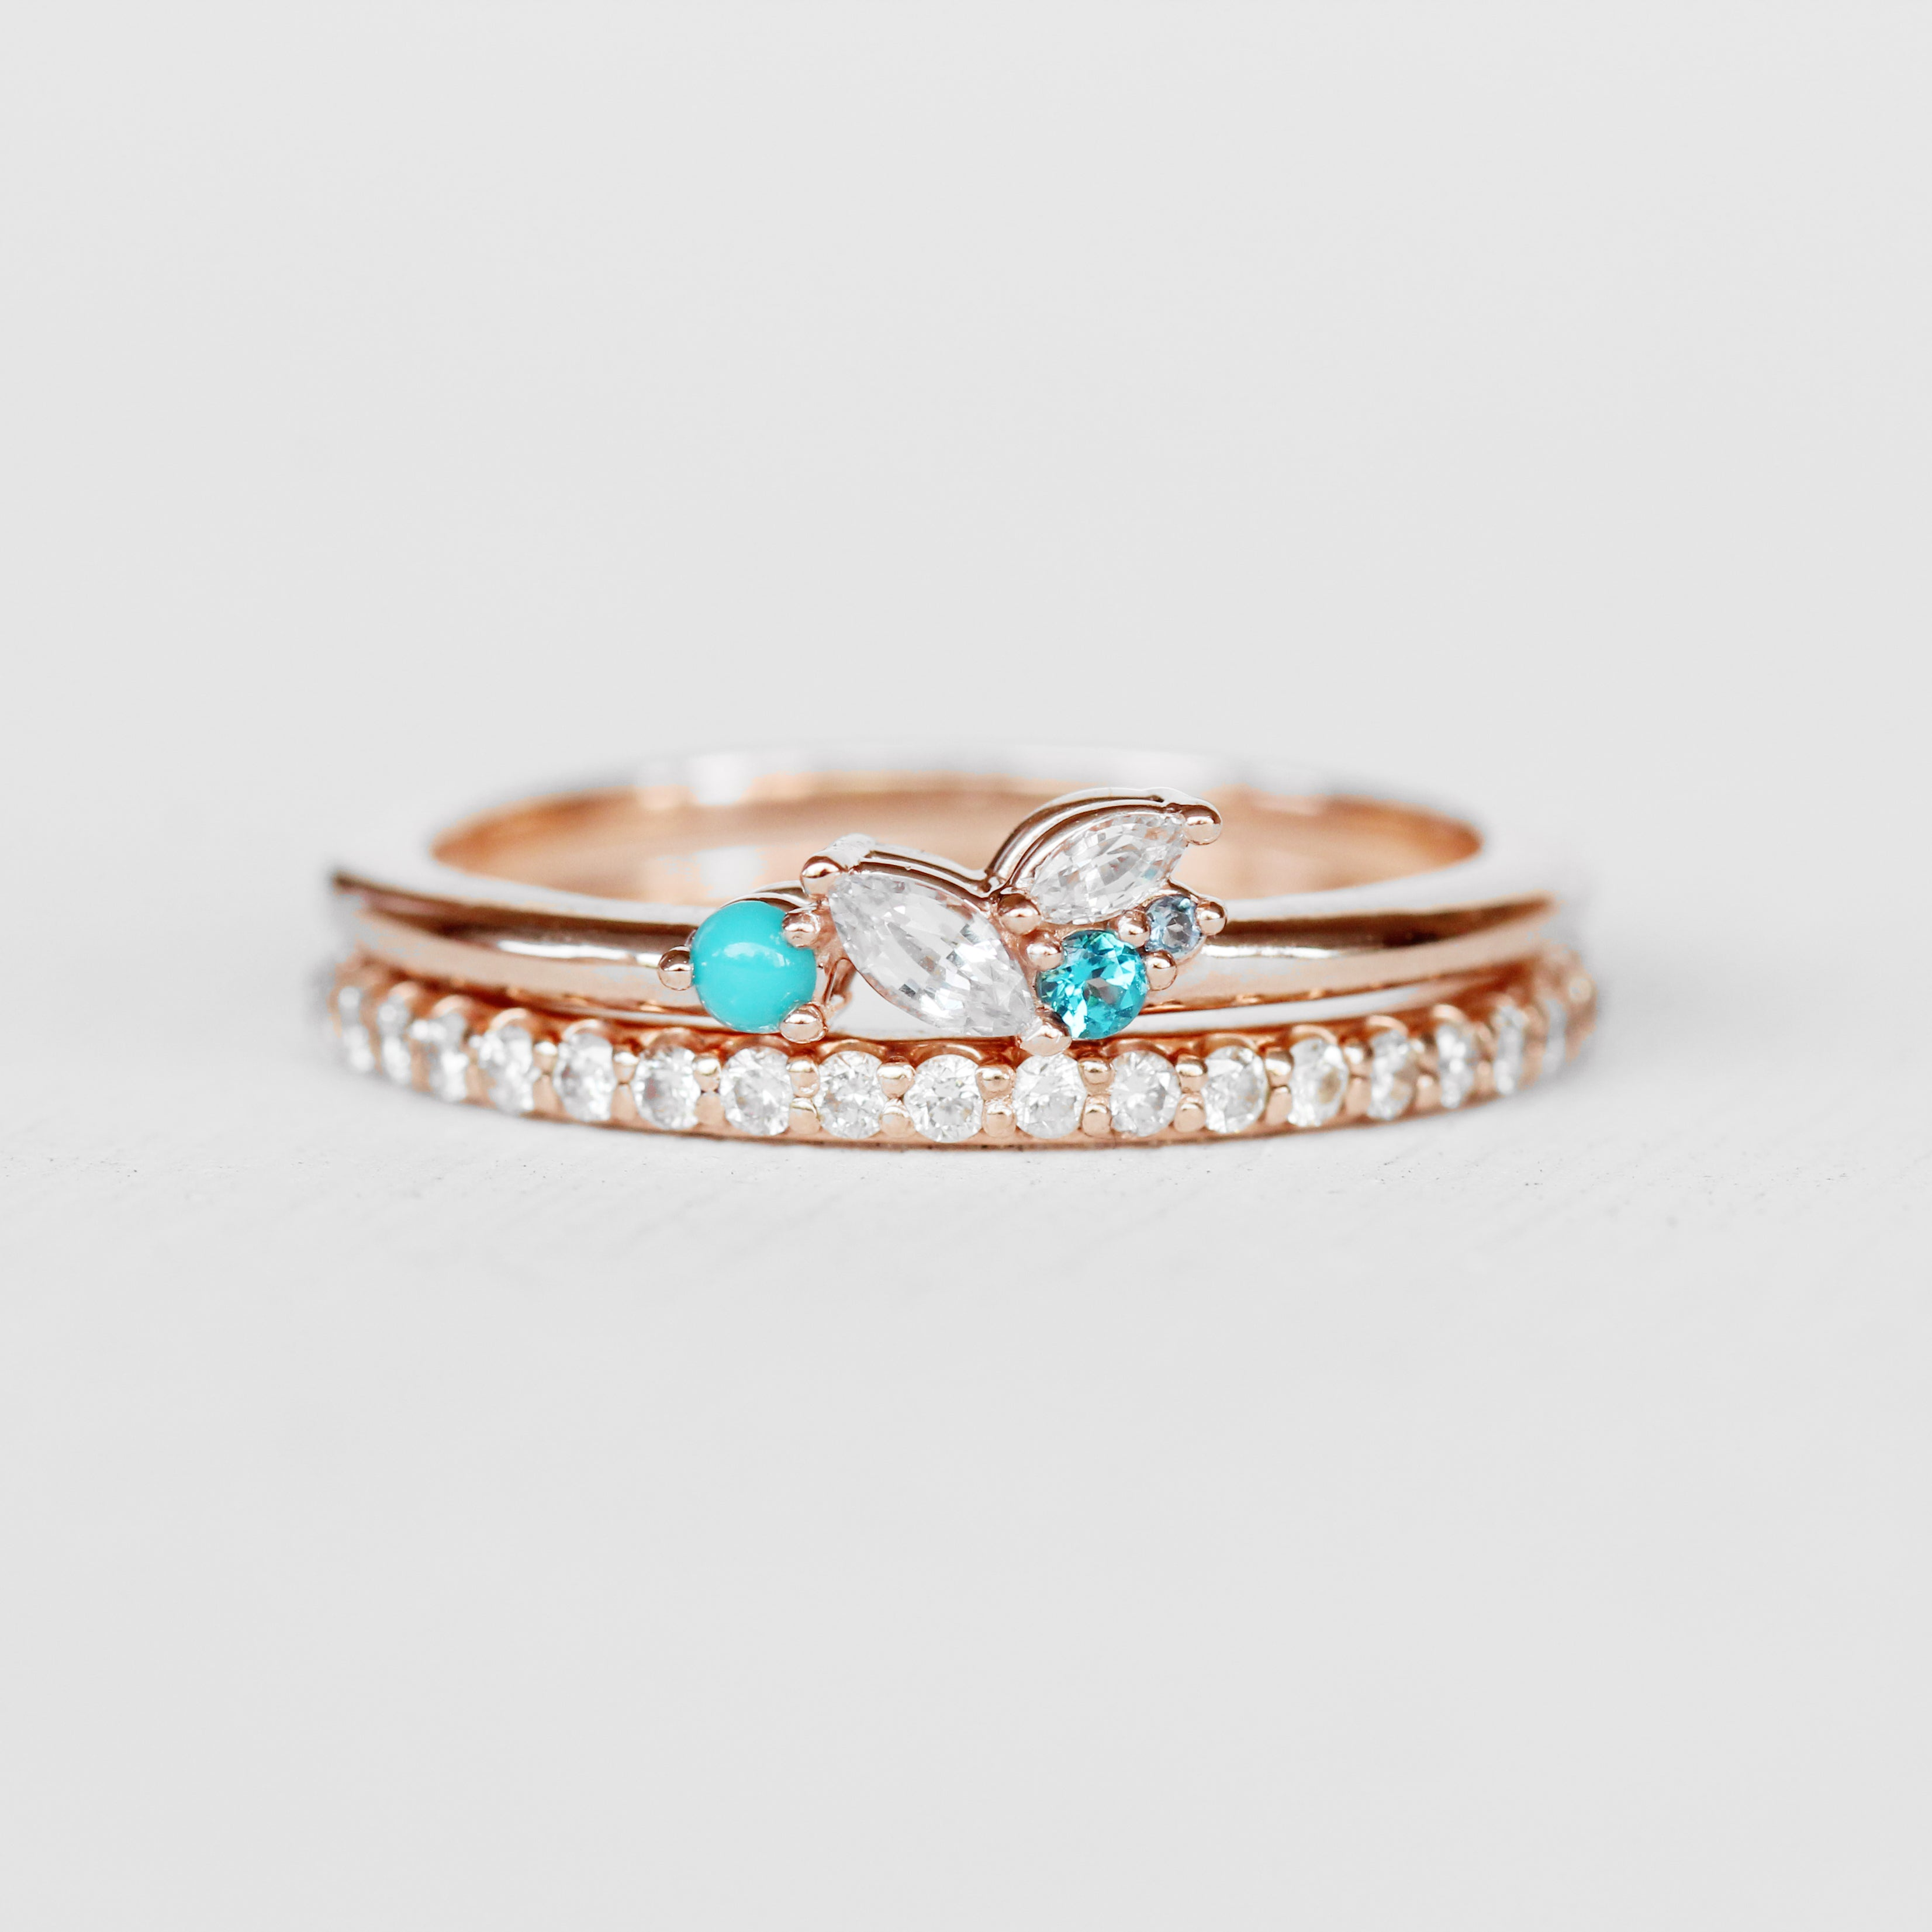 Anna Turquoise Aquamarine Sapphire Topaz Gemstone Cluster Stackable or Wedding Ring - Your choice of metal - Custom - Celestial Diamonds ® by Midwinter Co.